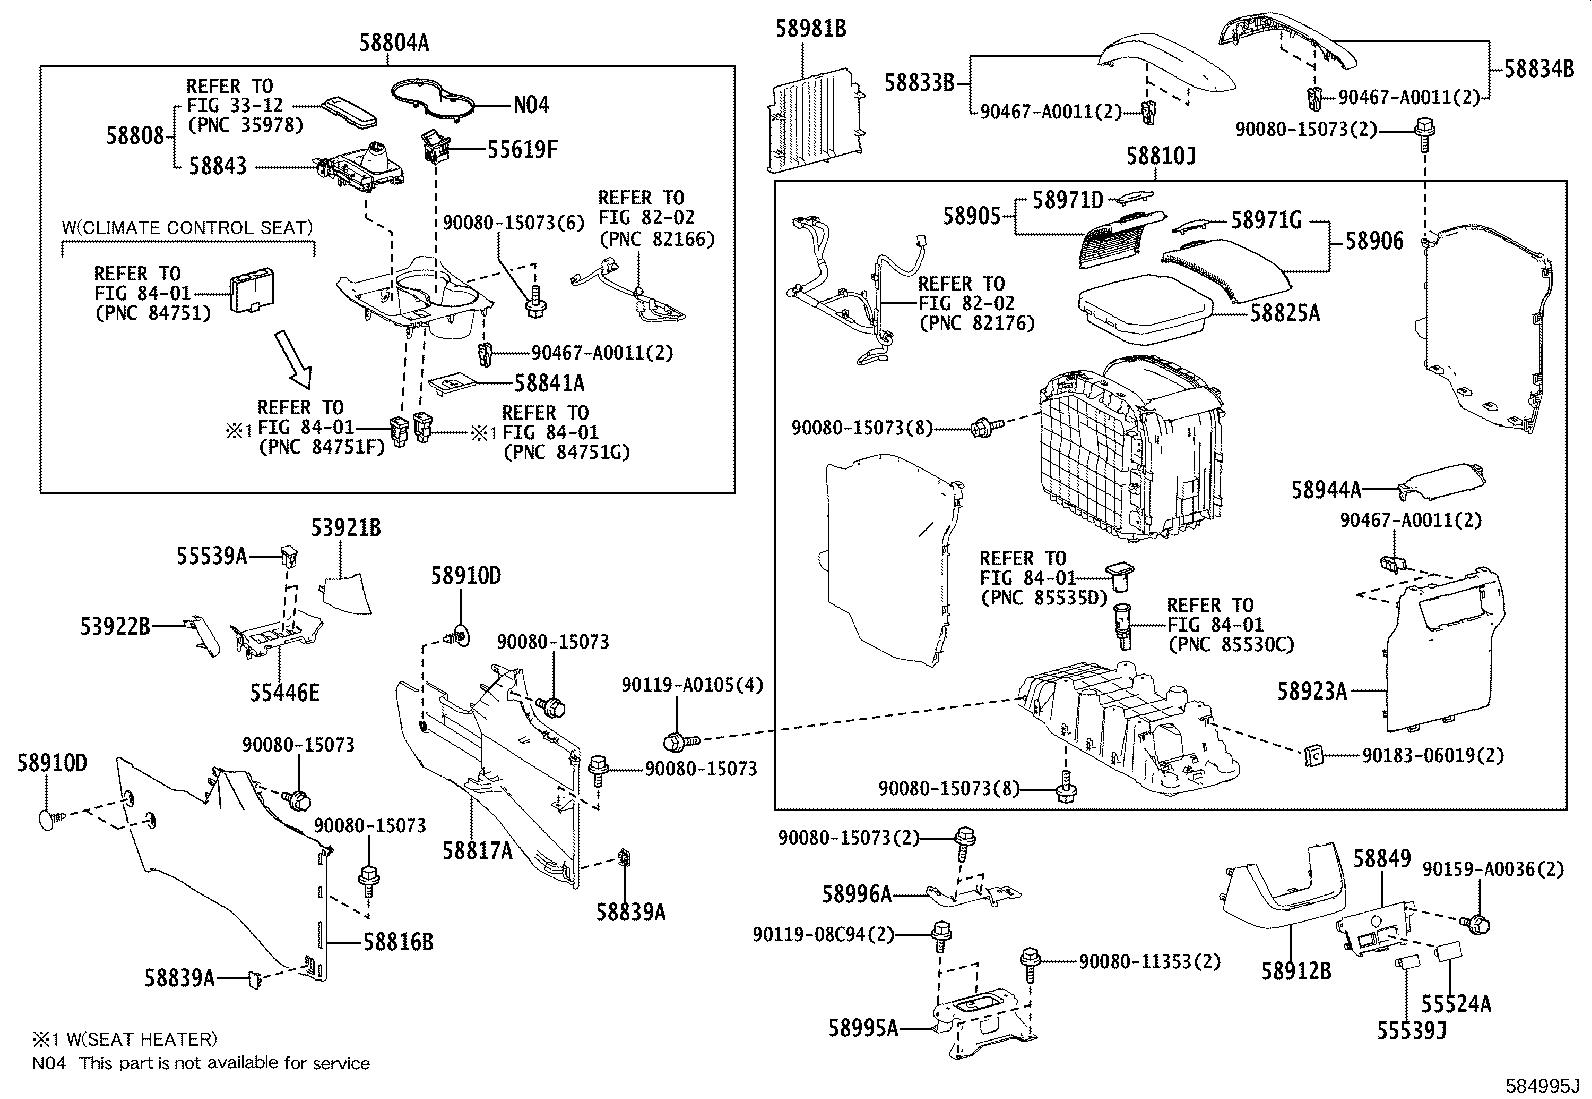 2015 Highlander Fuse Box Diagram | Wiring Diagram Database on